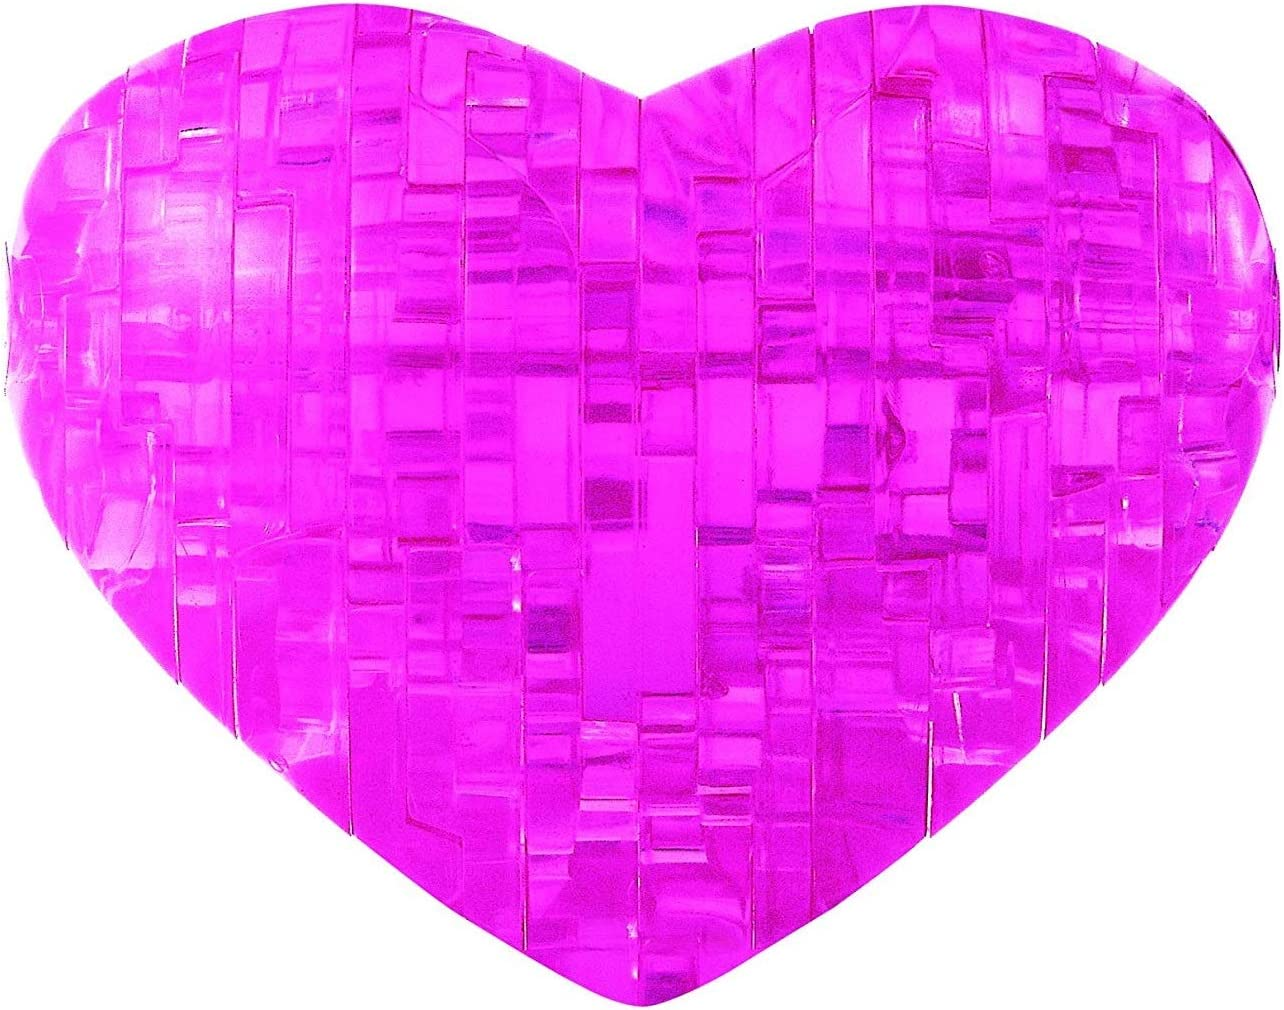 Bepuzzled Original 3D Crystal Puzzle - Heart, Pink - Fun yet challenging brain teaser that will test your skills and imagination, For Ages 12+